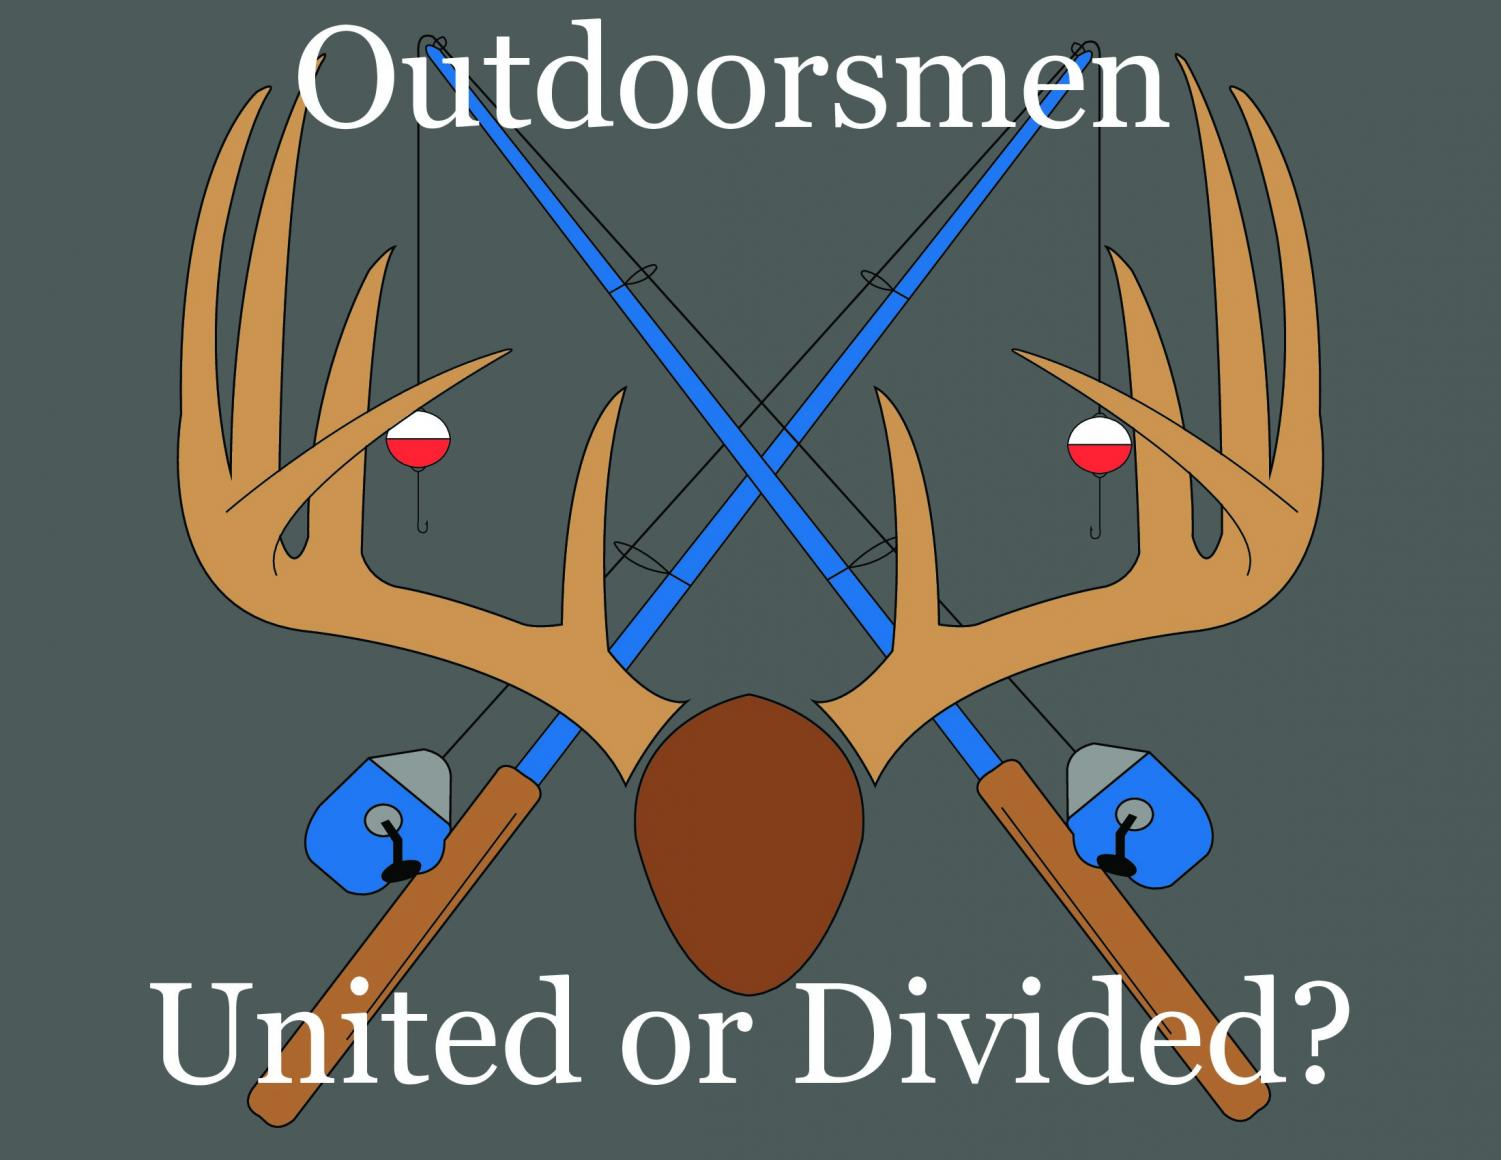 Outdoorsmen and women are becoming more and more divided, because of back and forth disagreements on social media.